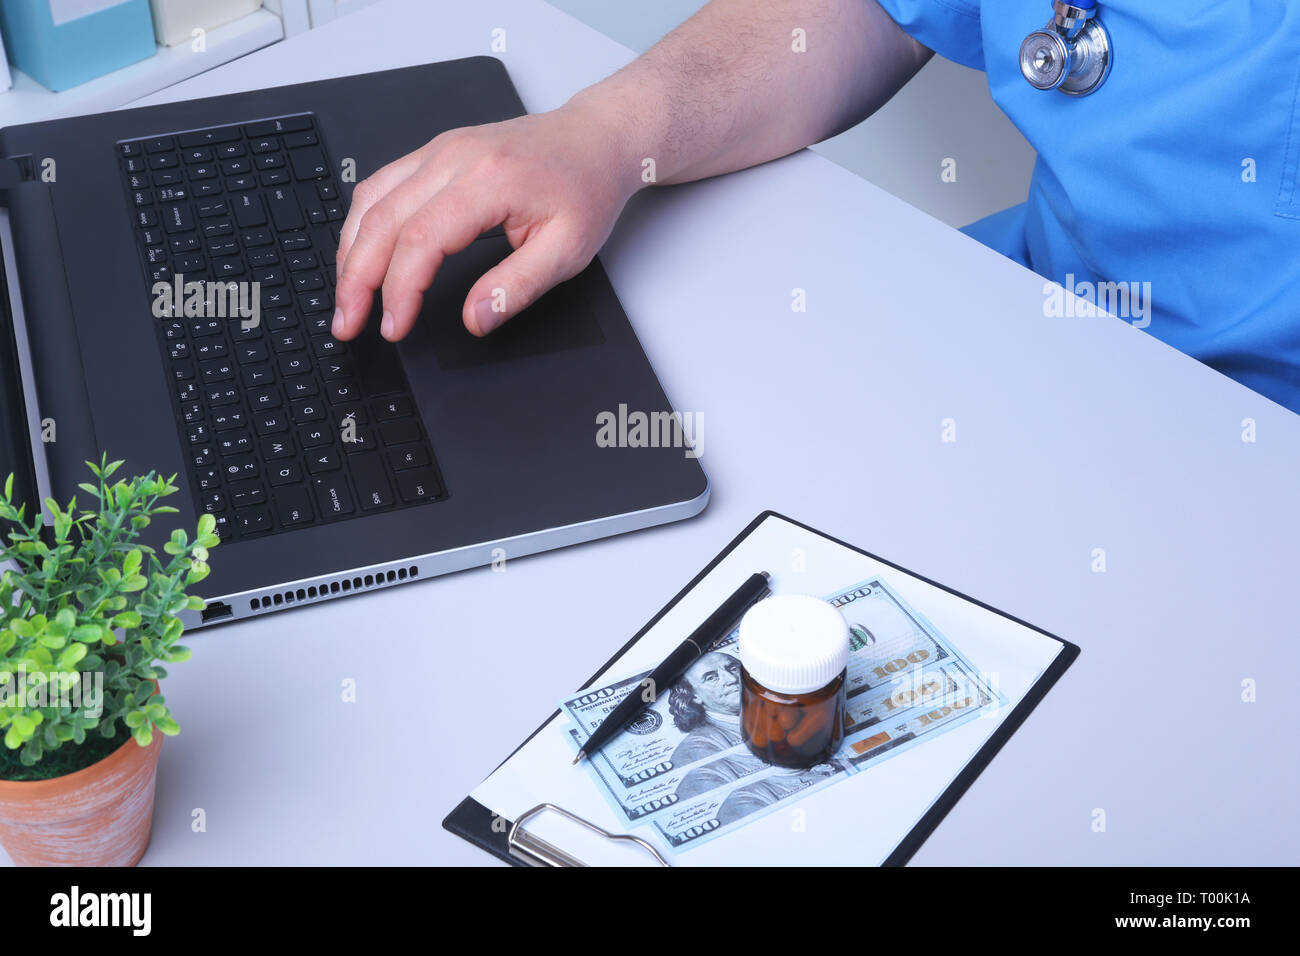 View of Details of doctor hands typing on keyboard - Stock Image